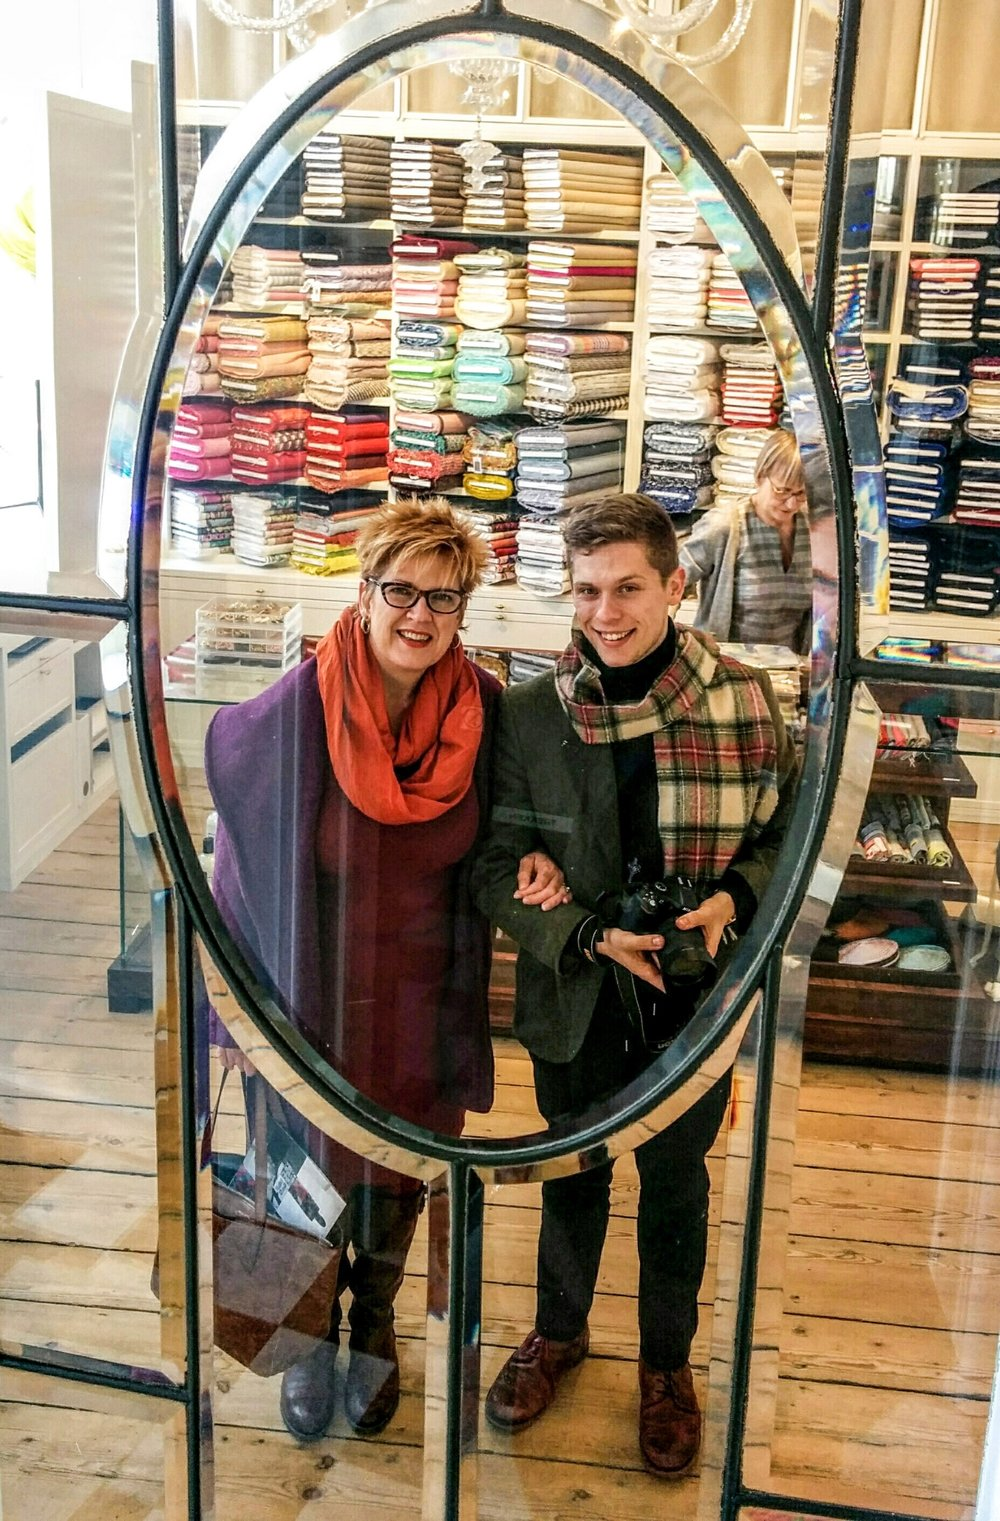 Fabulous Fabric was purchased here! With @SewingDude Thomas Renwart in Ghent